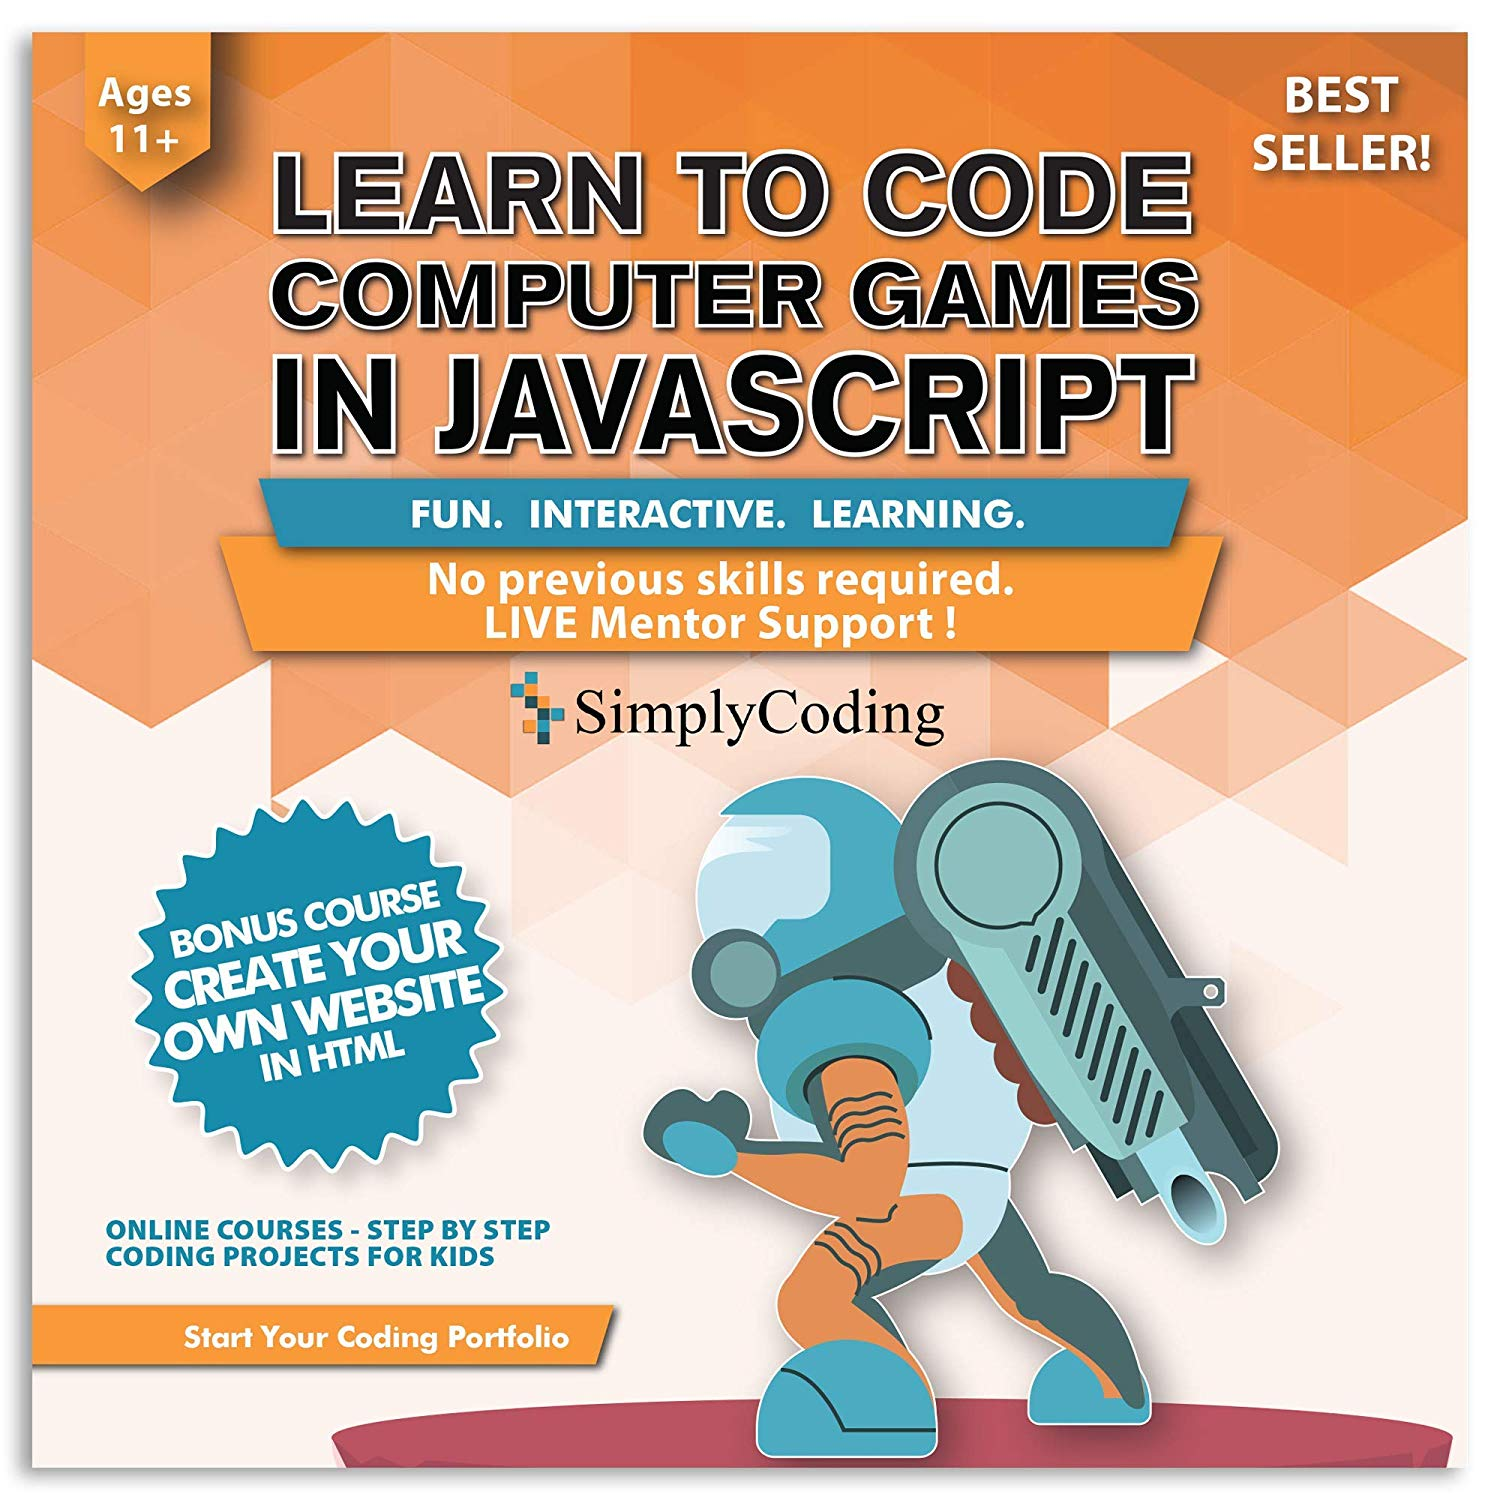 Simply Coding JavaScript Game Design Course Introduces Live Mentor Support